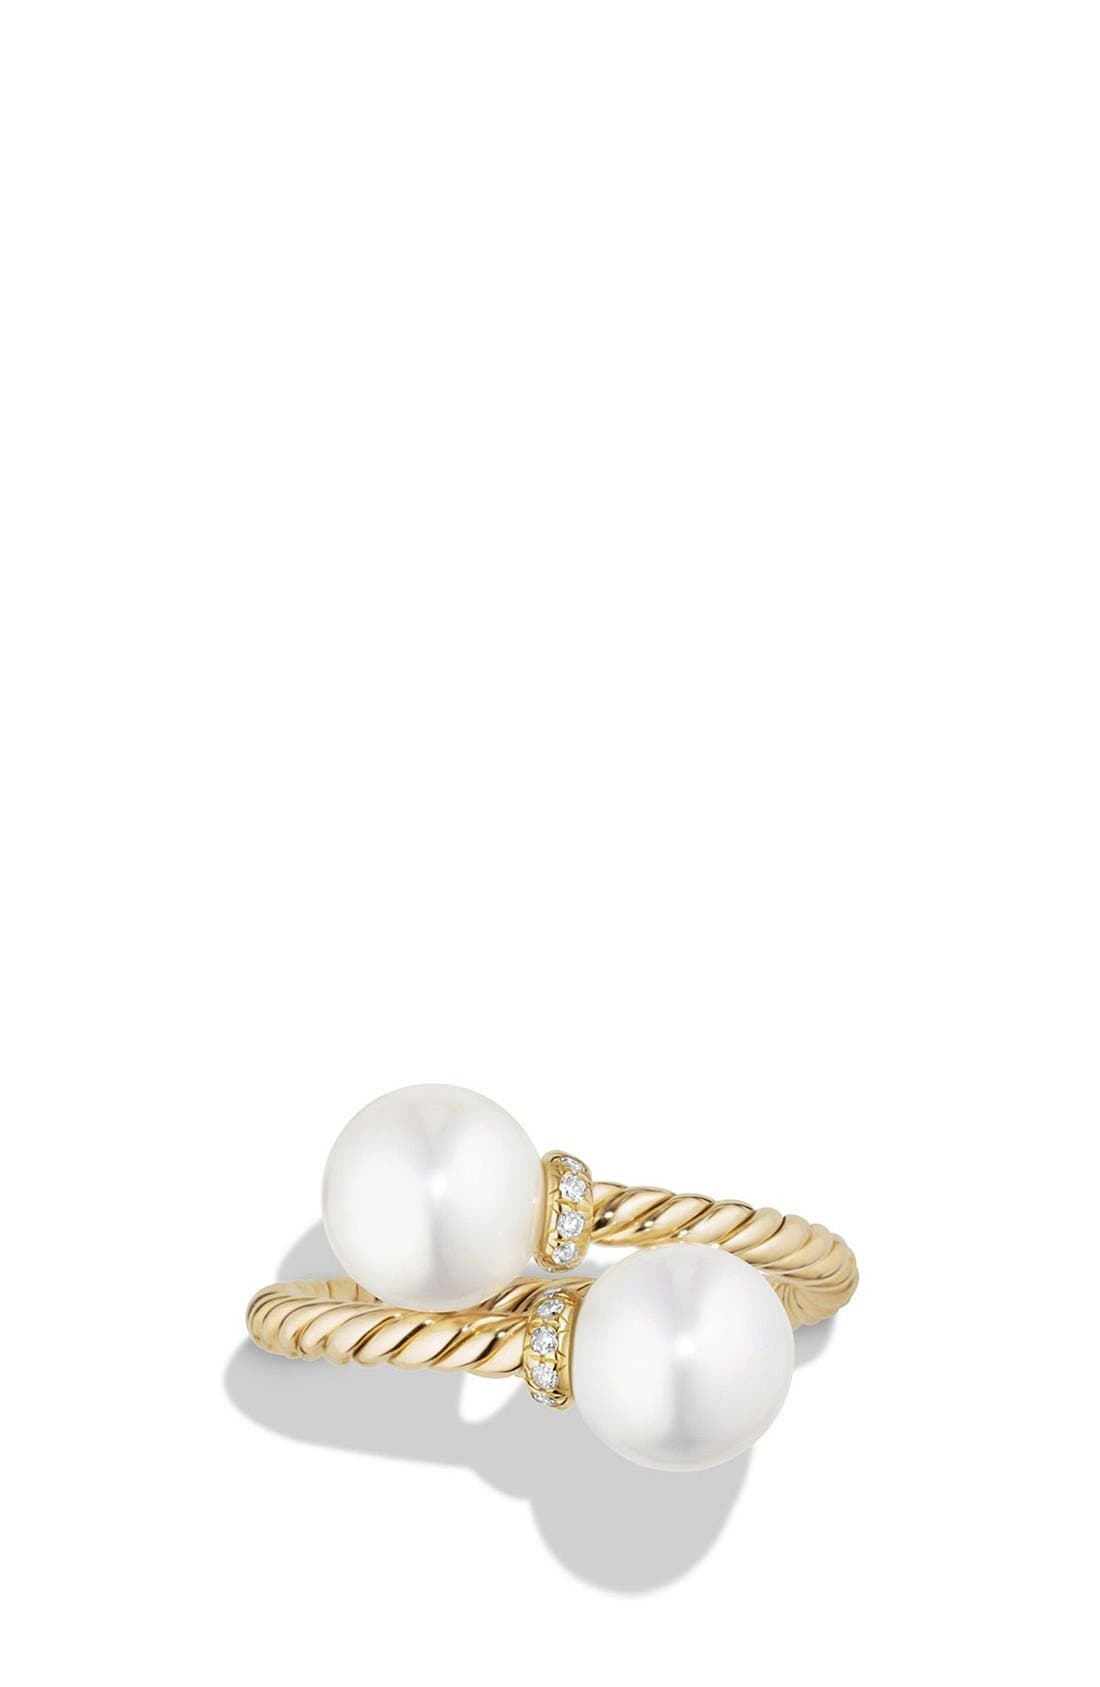 Alternate Image 3  - David Yurman 'Solari' Bead Ring with Diamonds and Pearls in 18K Gold